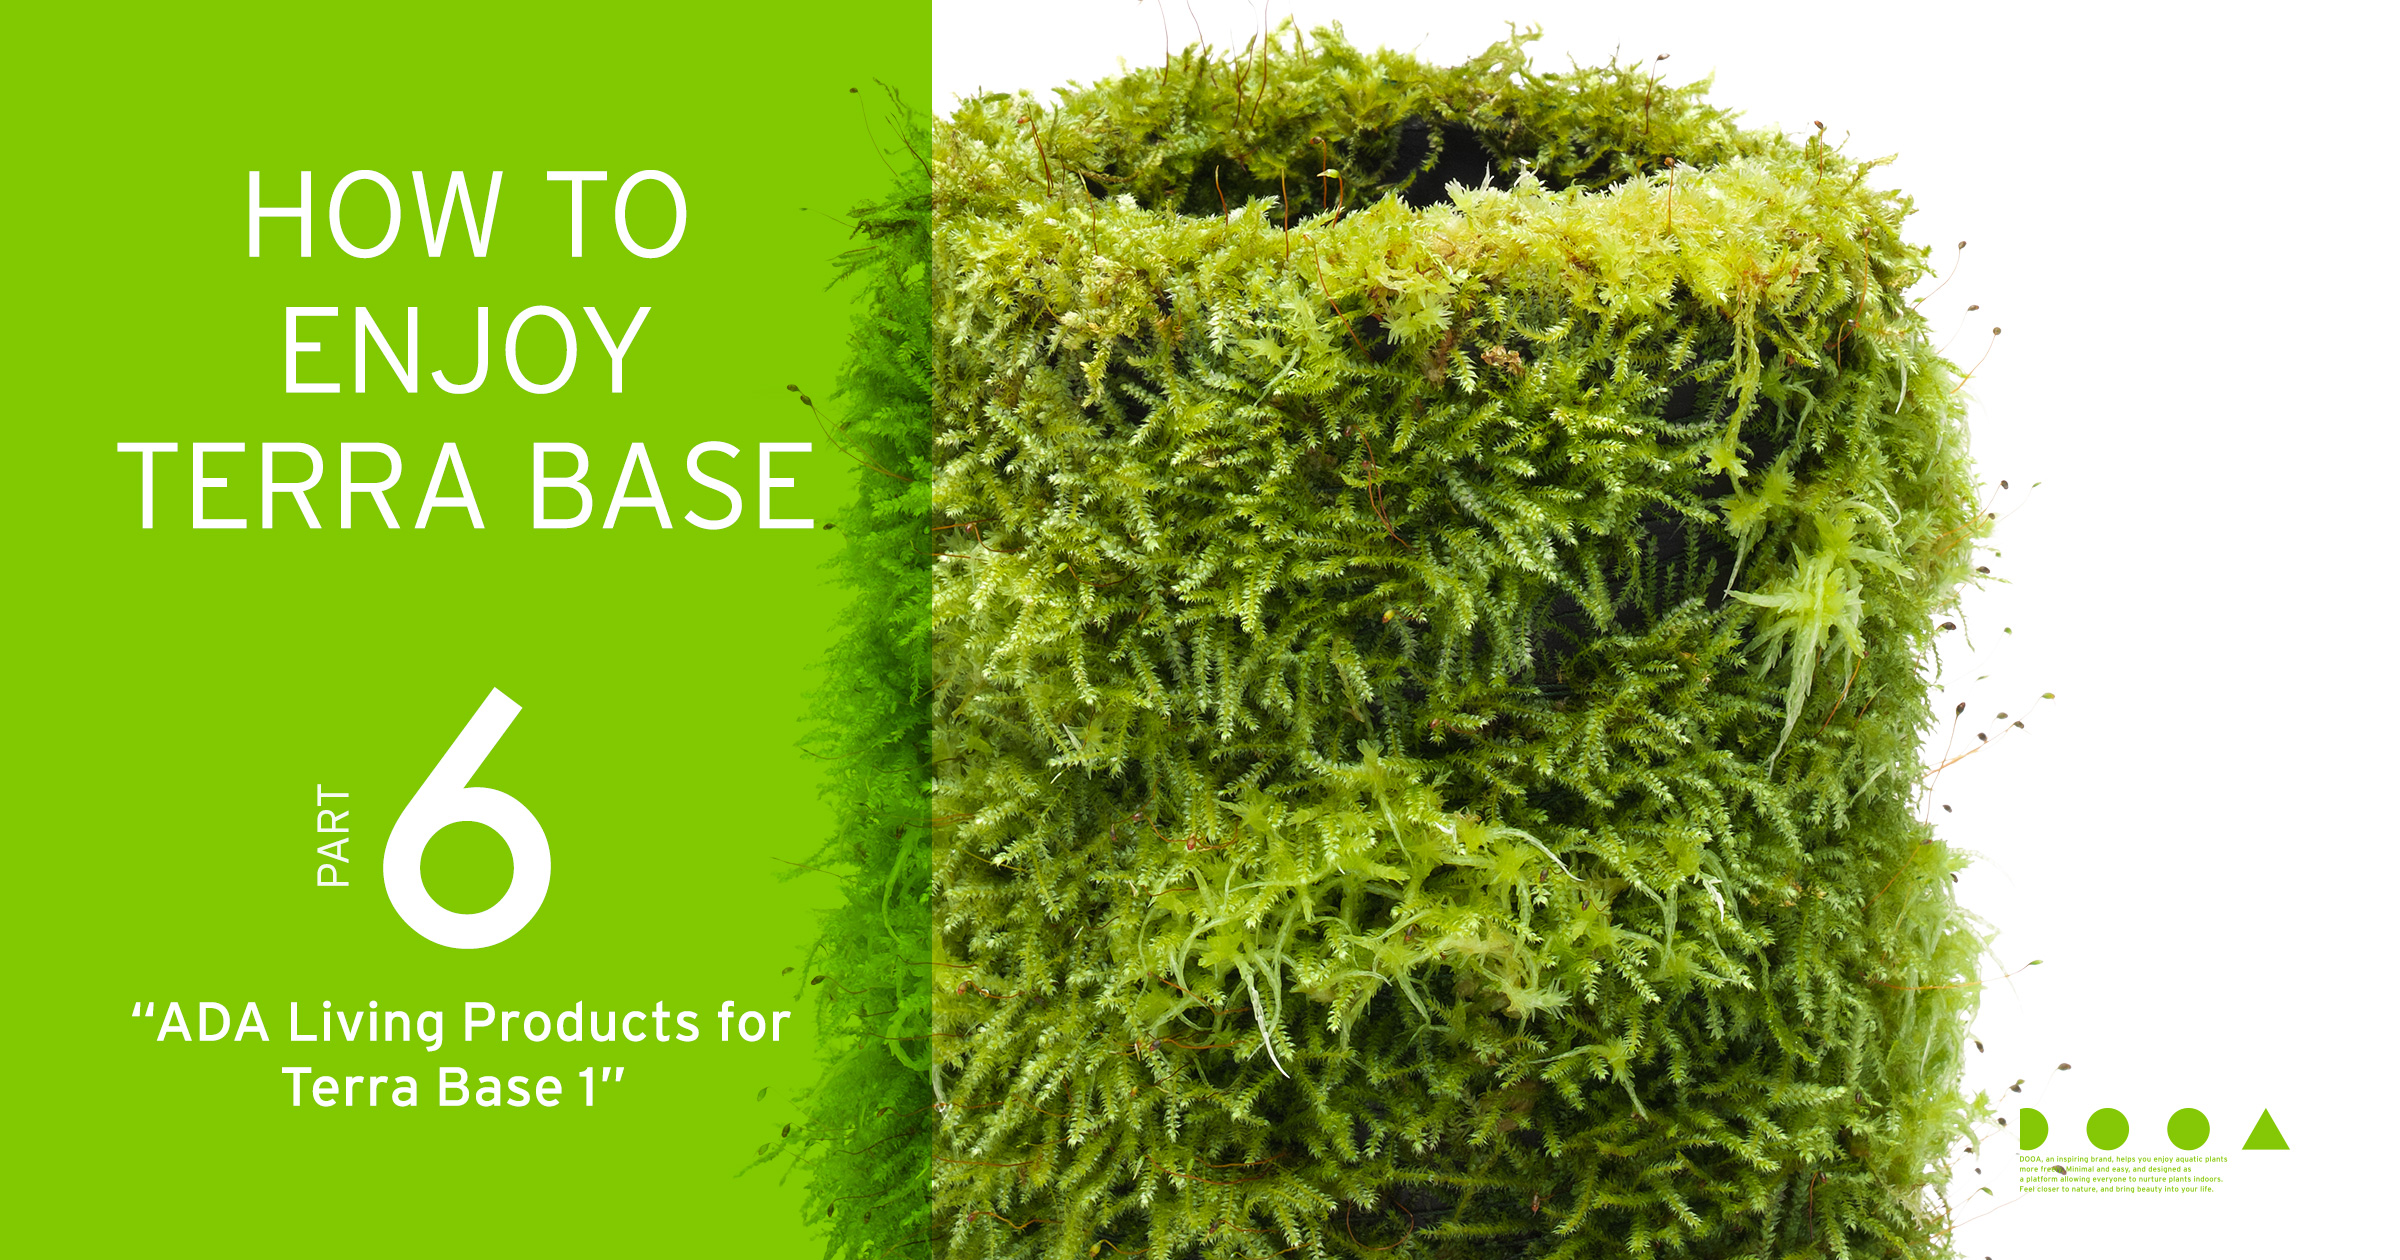 """HOW TO ENJOY TERRA BASE """"ADA Living Products for Terra Base vol.1"""""""